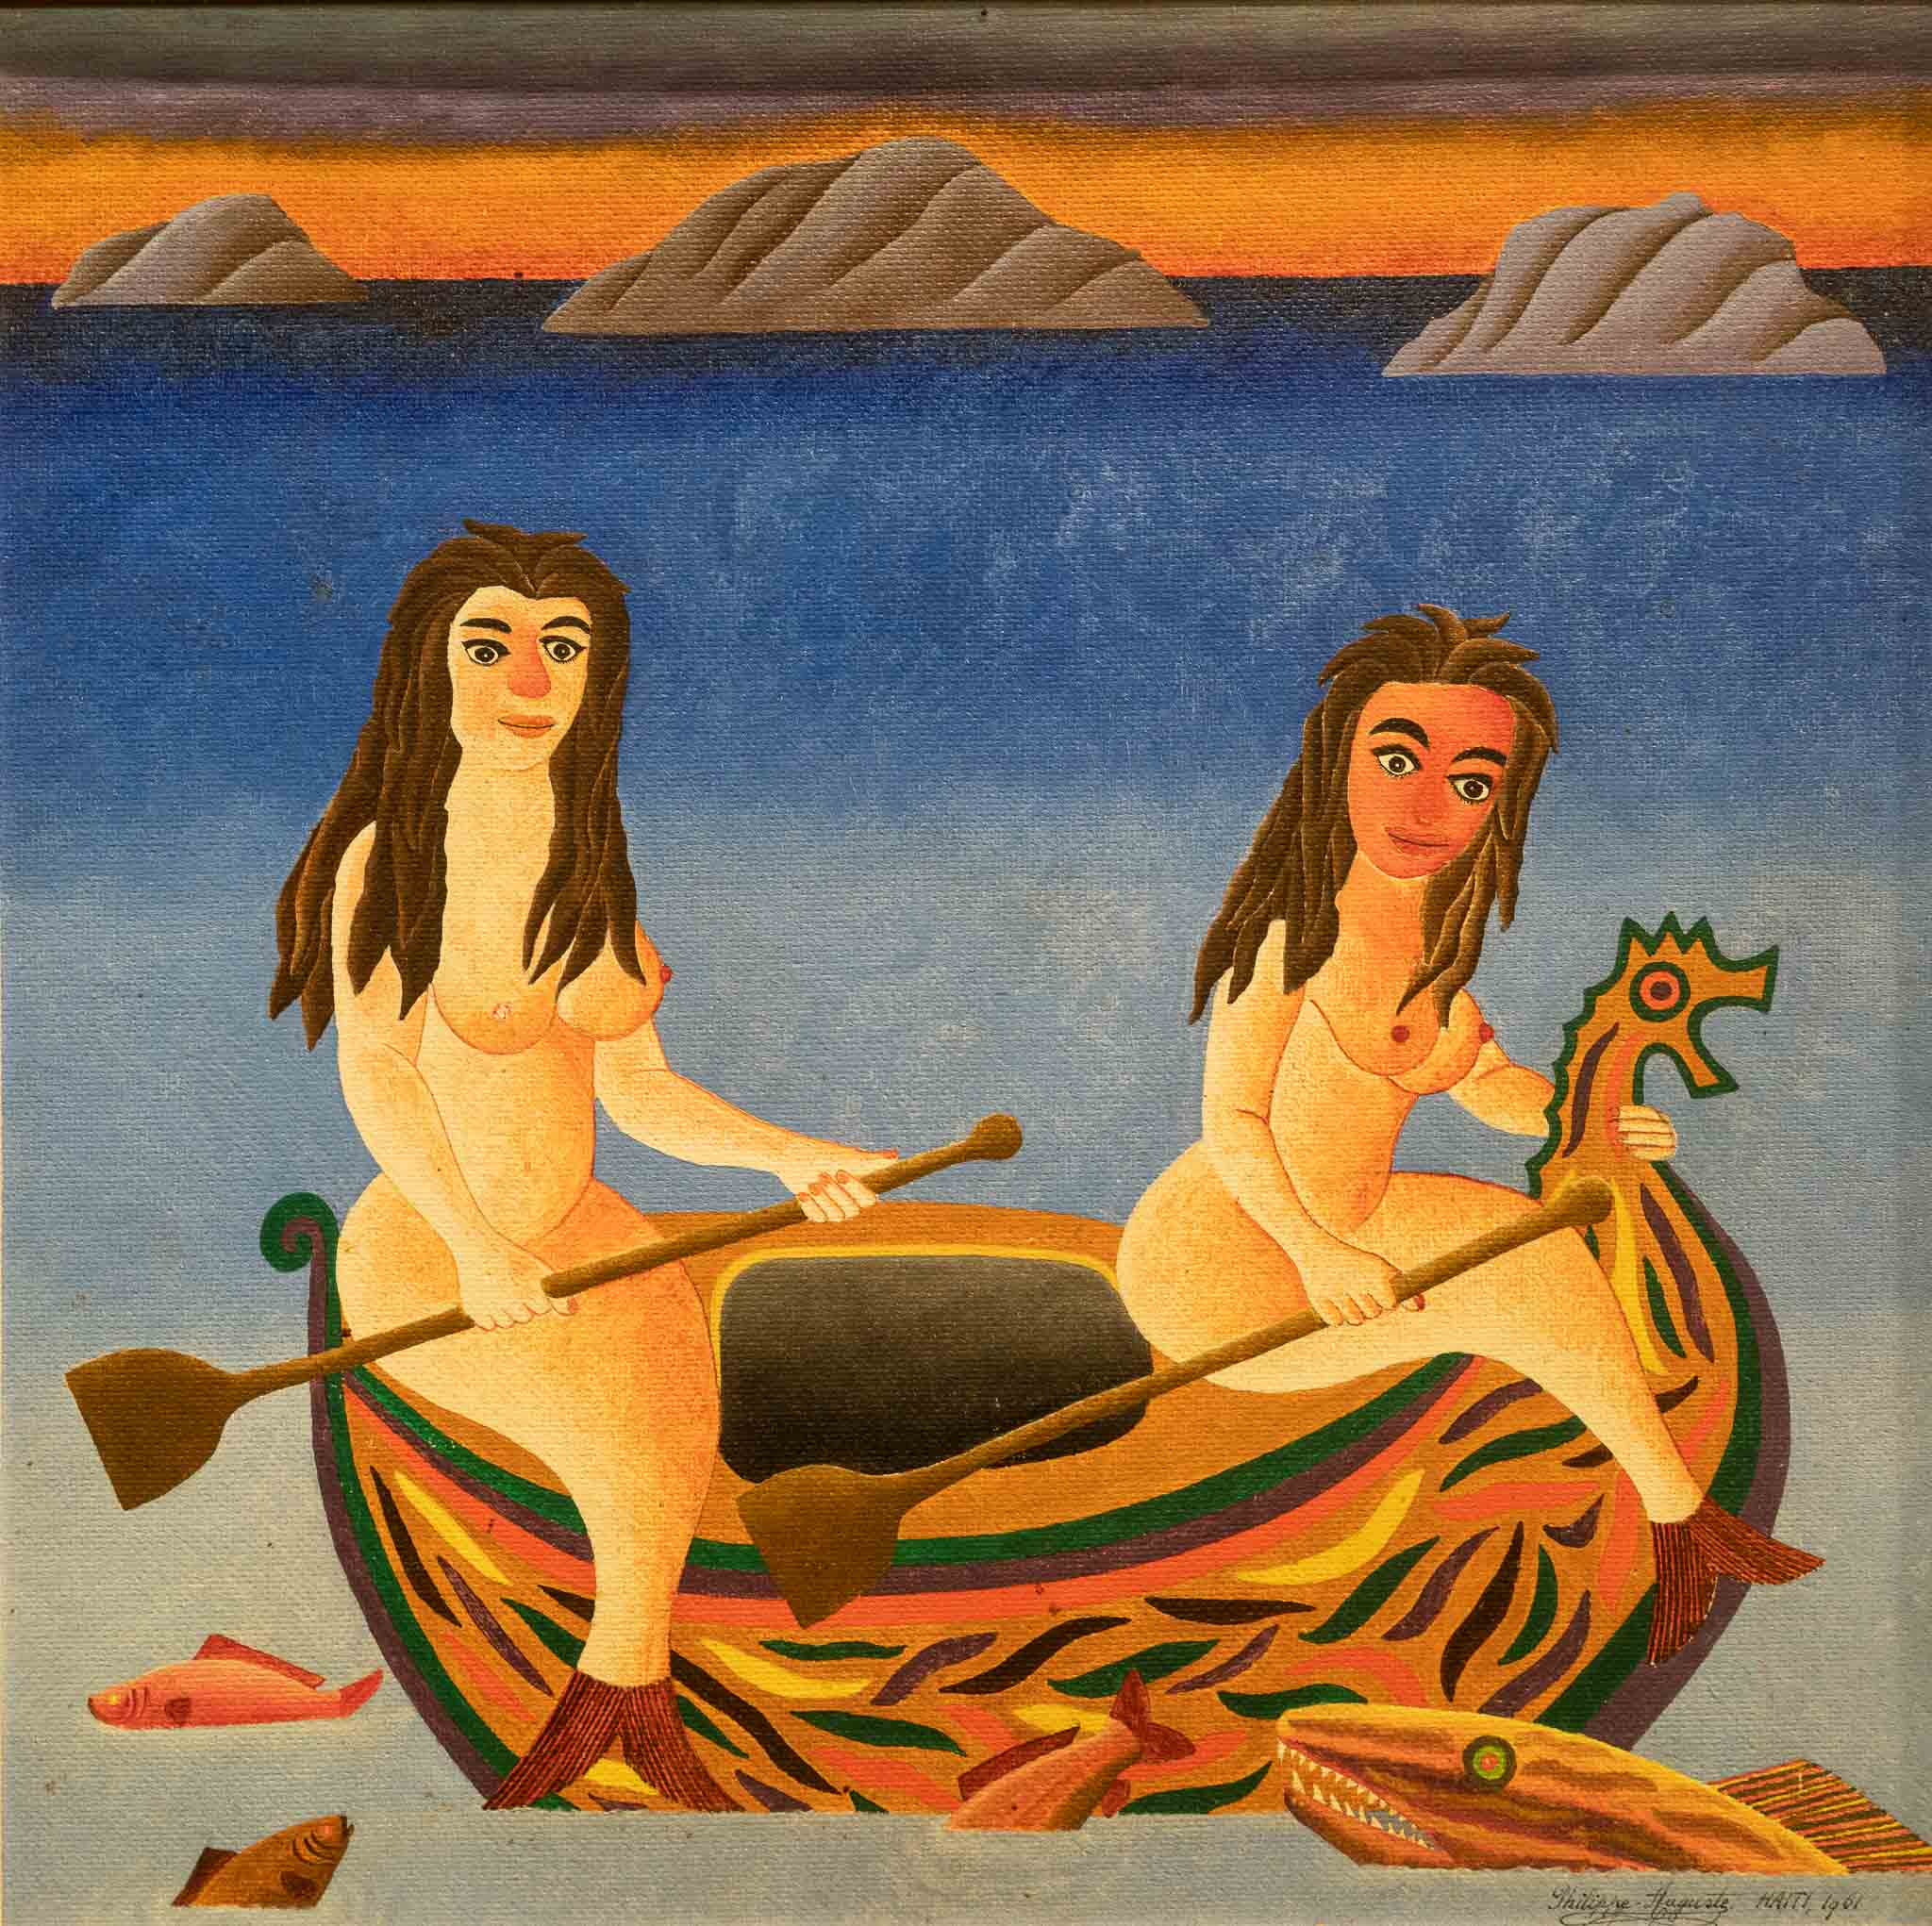 Mermaids in a Boat, 1965